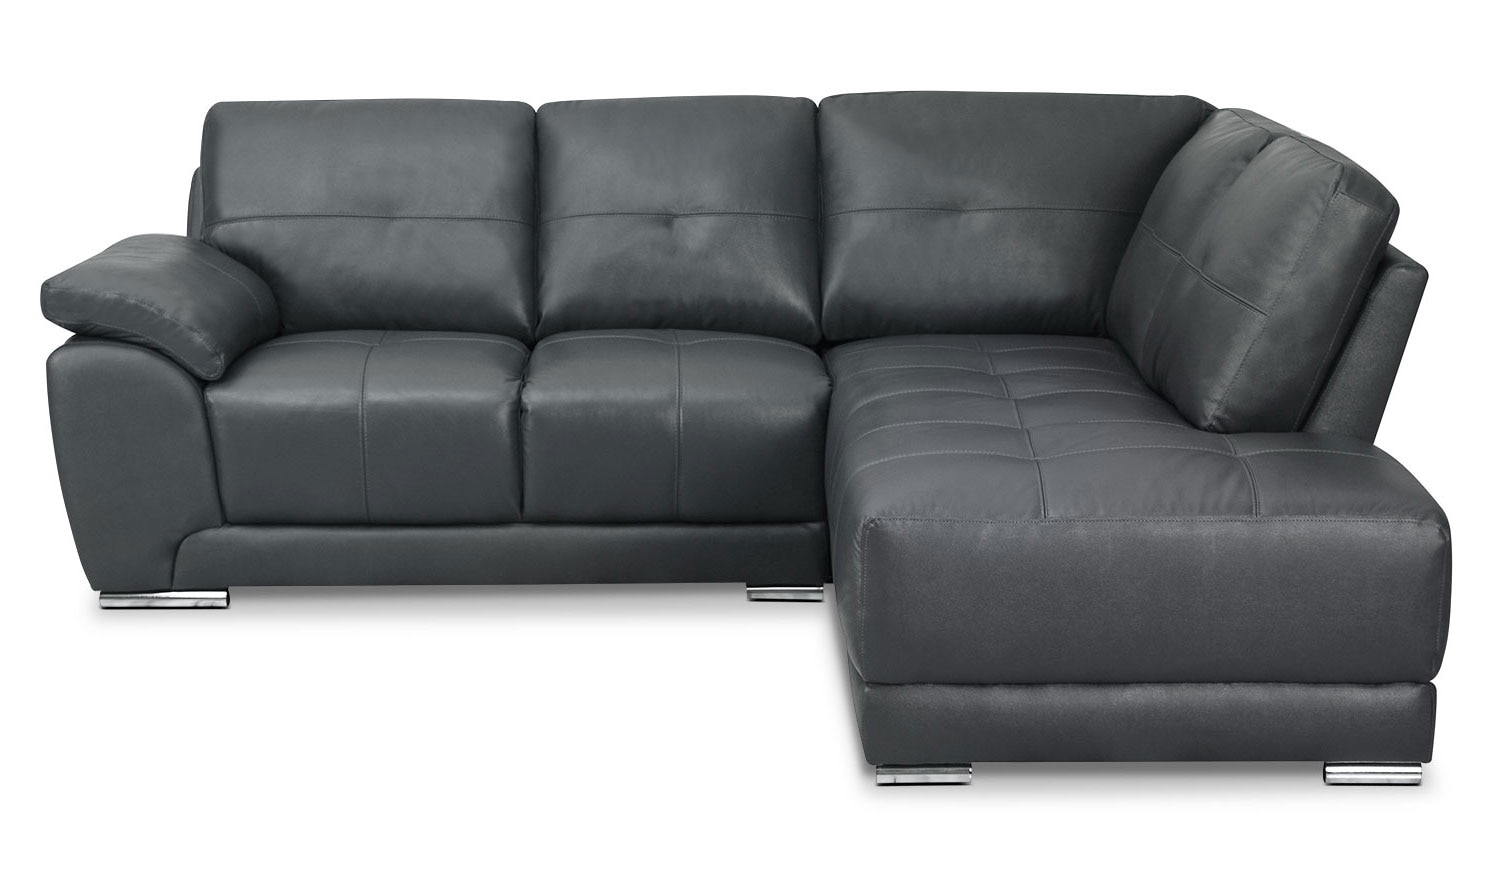 sectionals  the brick - rylee piece genuine leather rightfacing sectional  grey